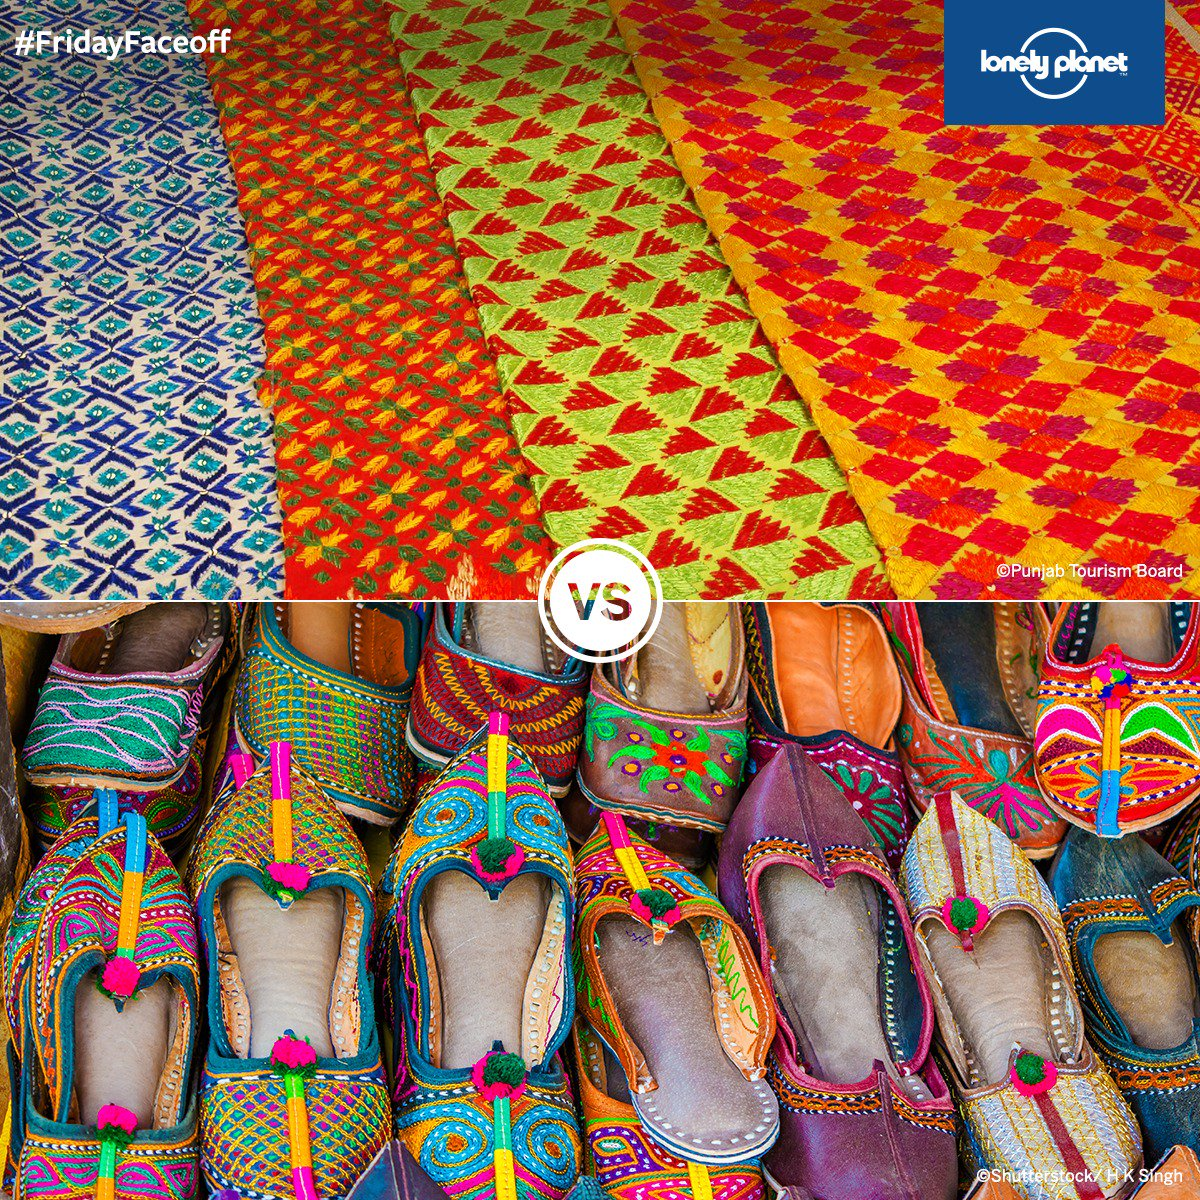 Lonely Planet India On Twitter The Handicrafts Of Punjab Reflect